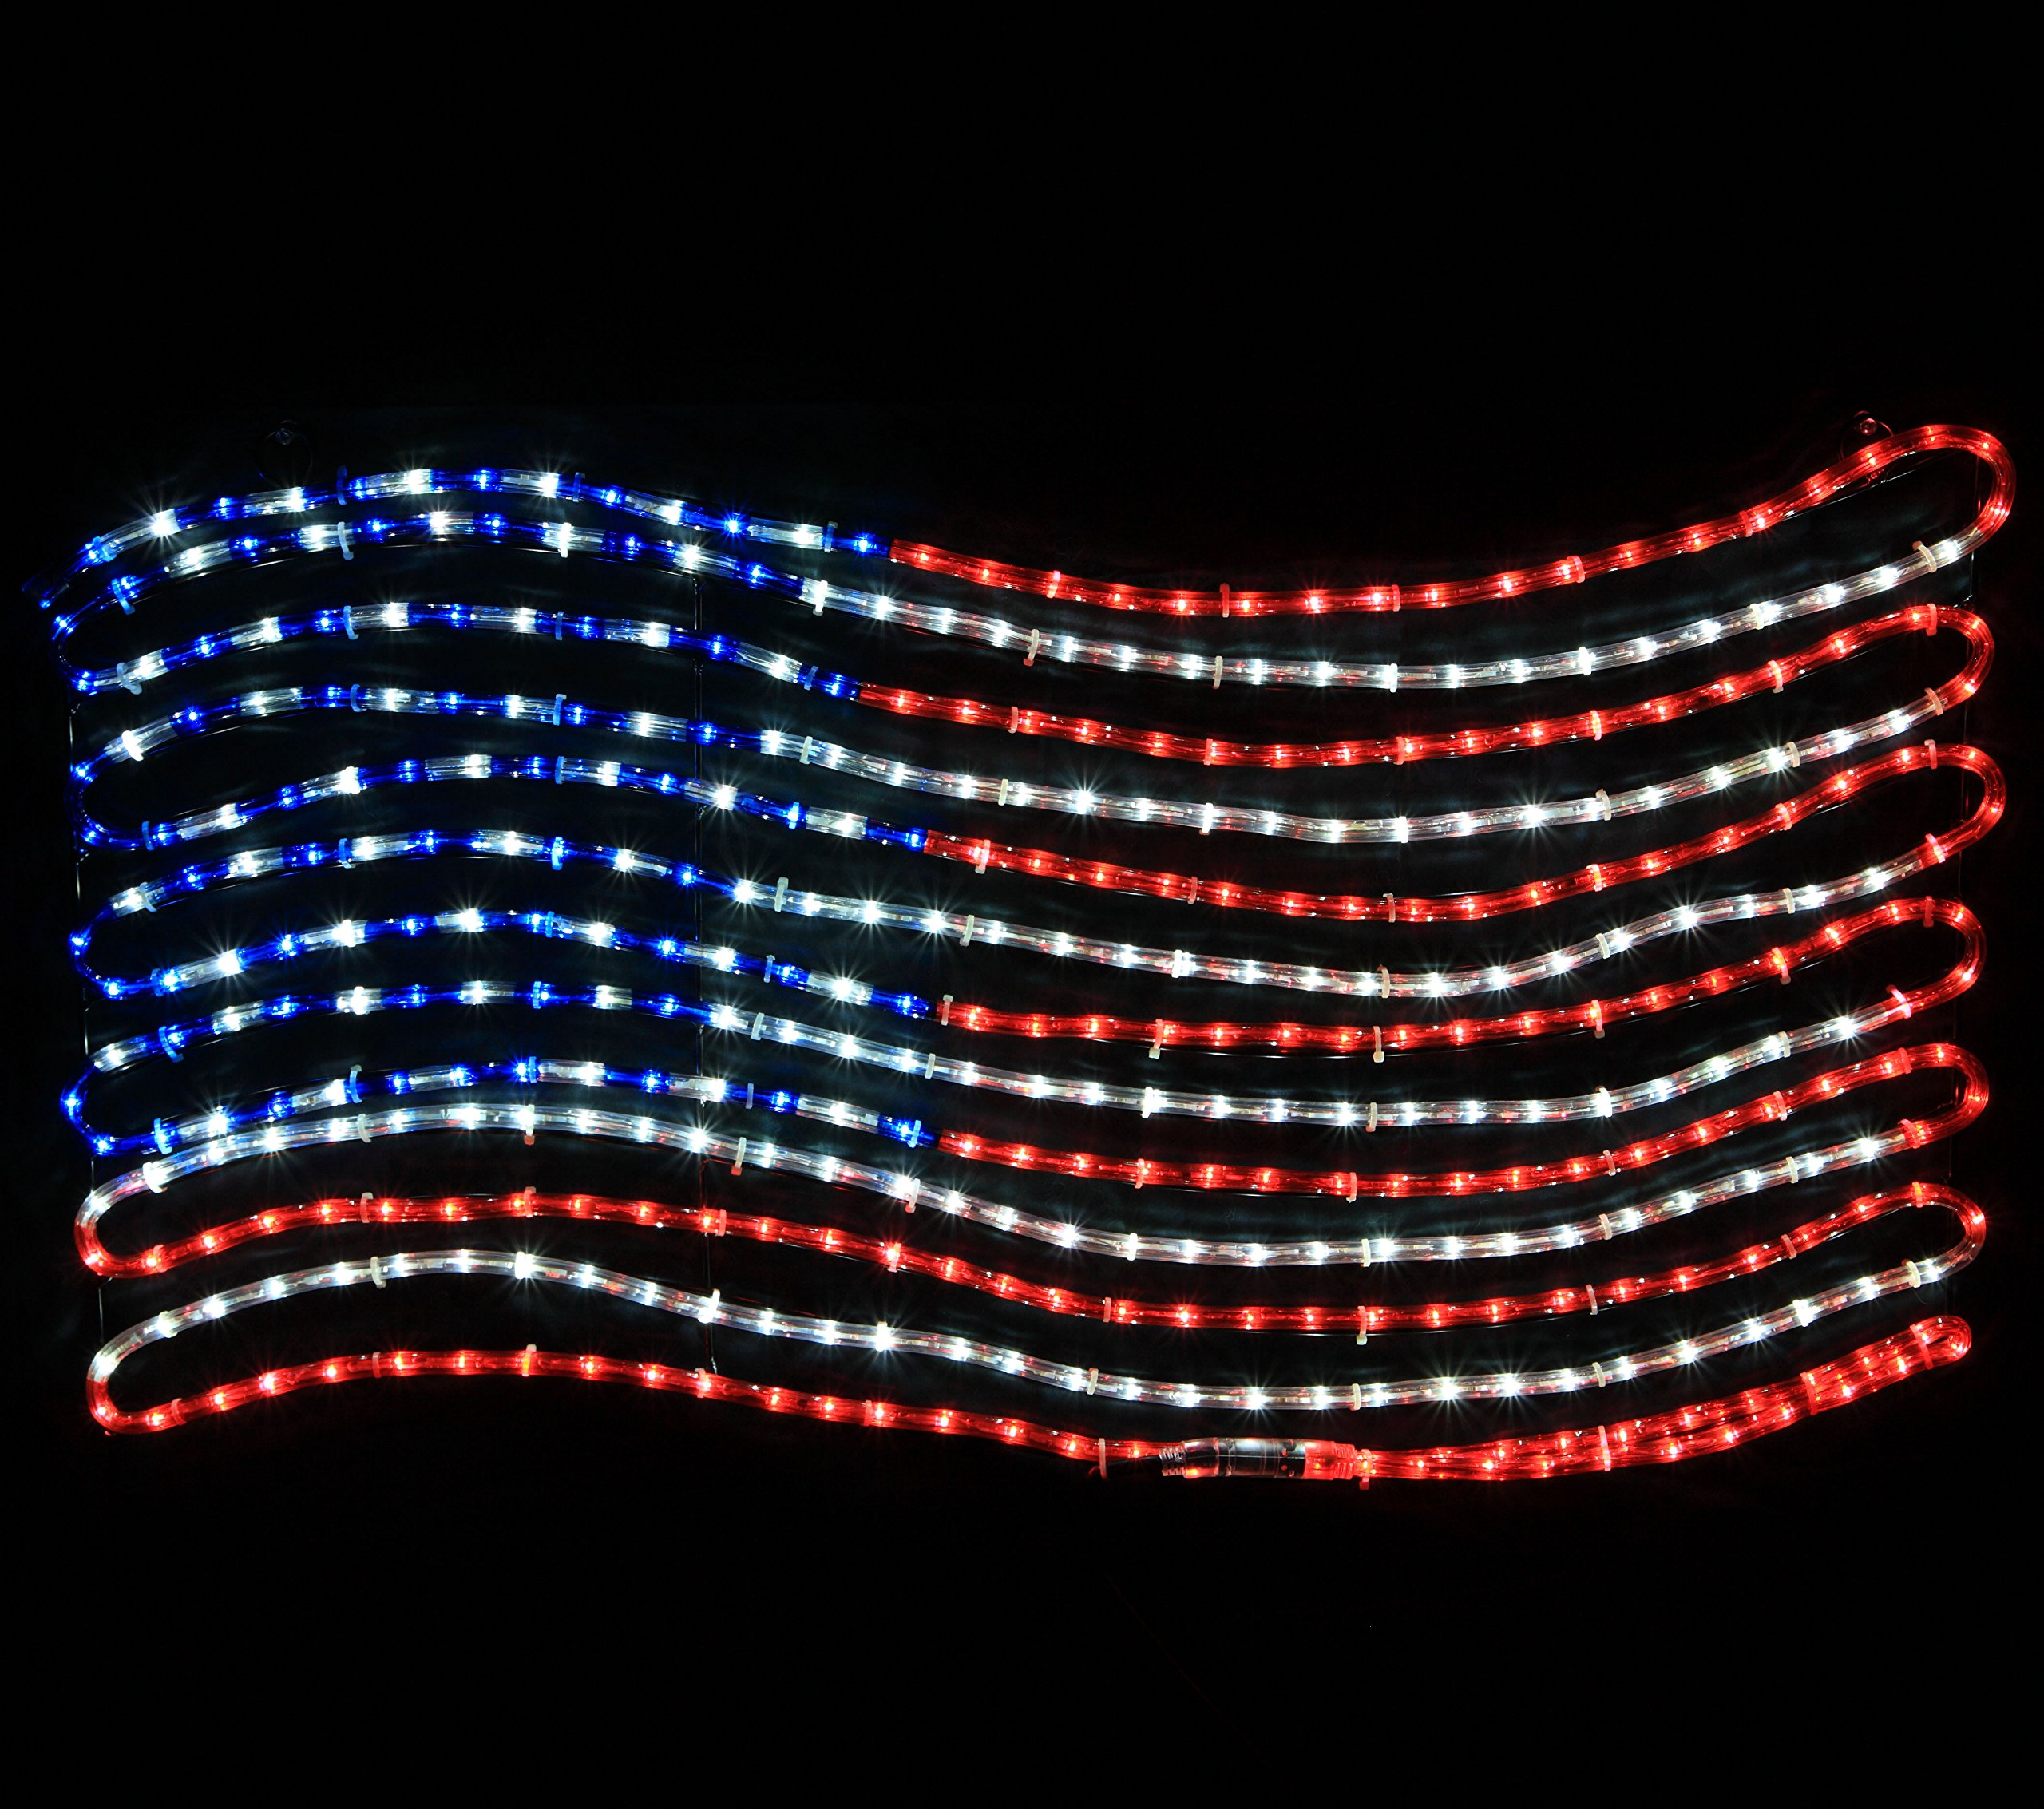 Rope Light Patriotic American Flag - American Flag Light American USA Flag – Patriotic Lights (LED Rope Light, Red, White, and Blue) by Wintergreen Lighting